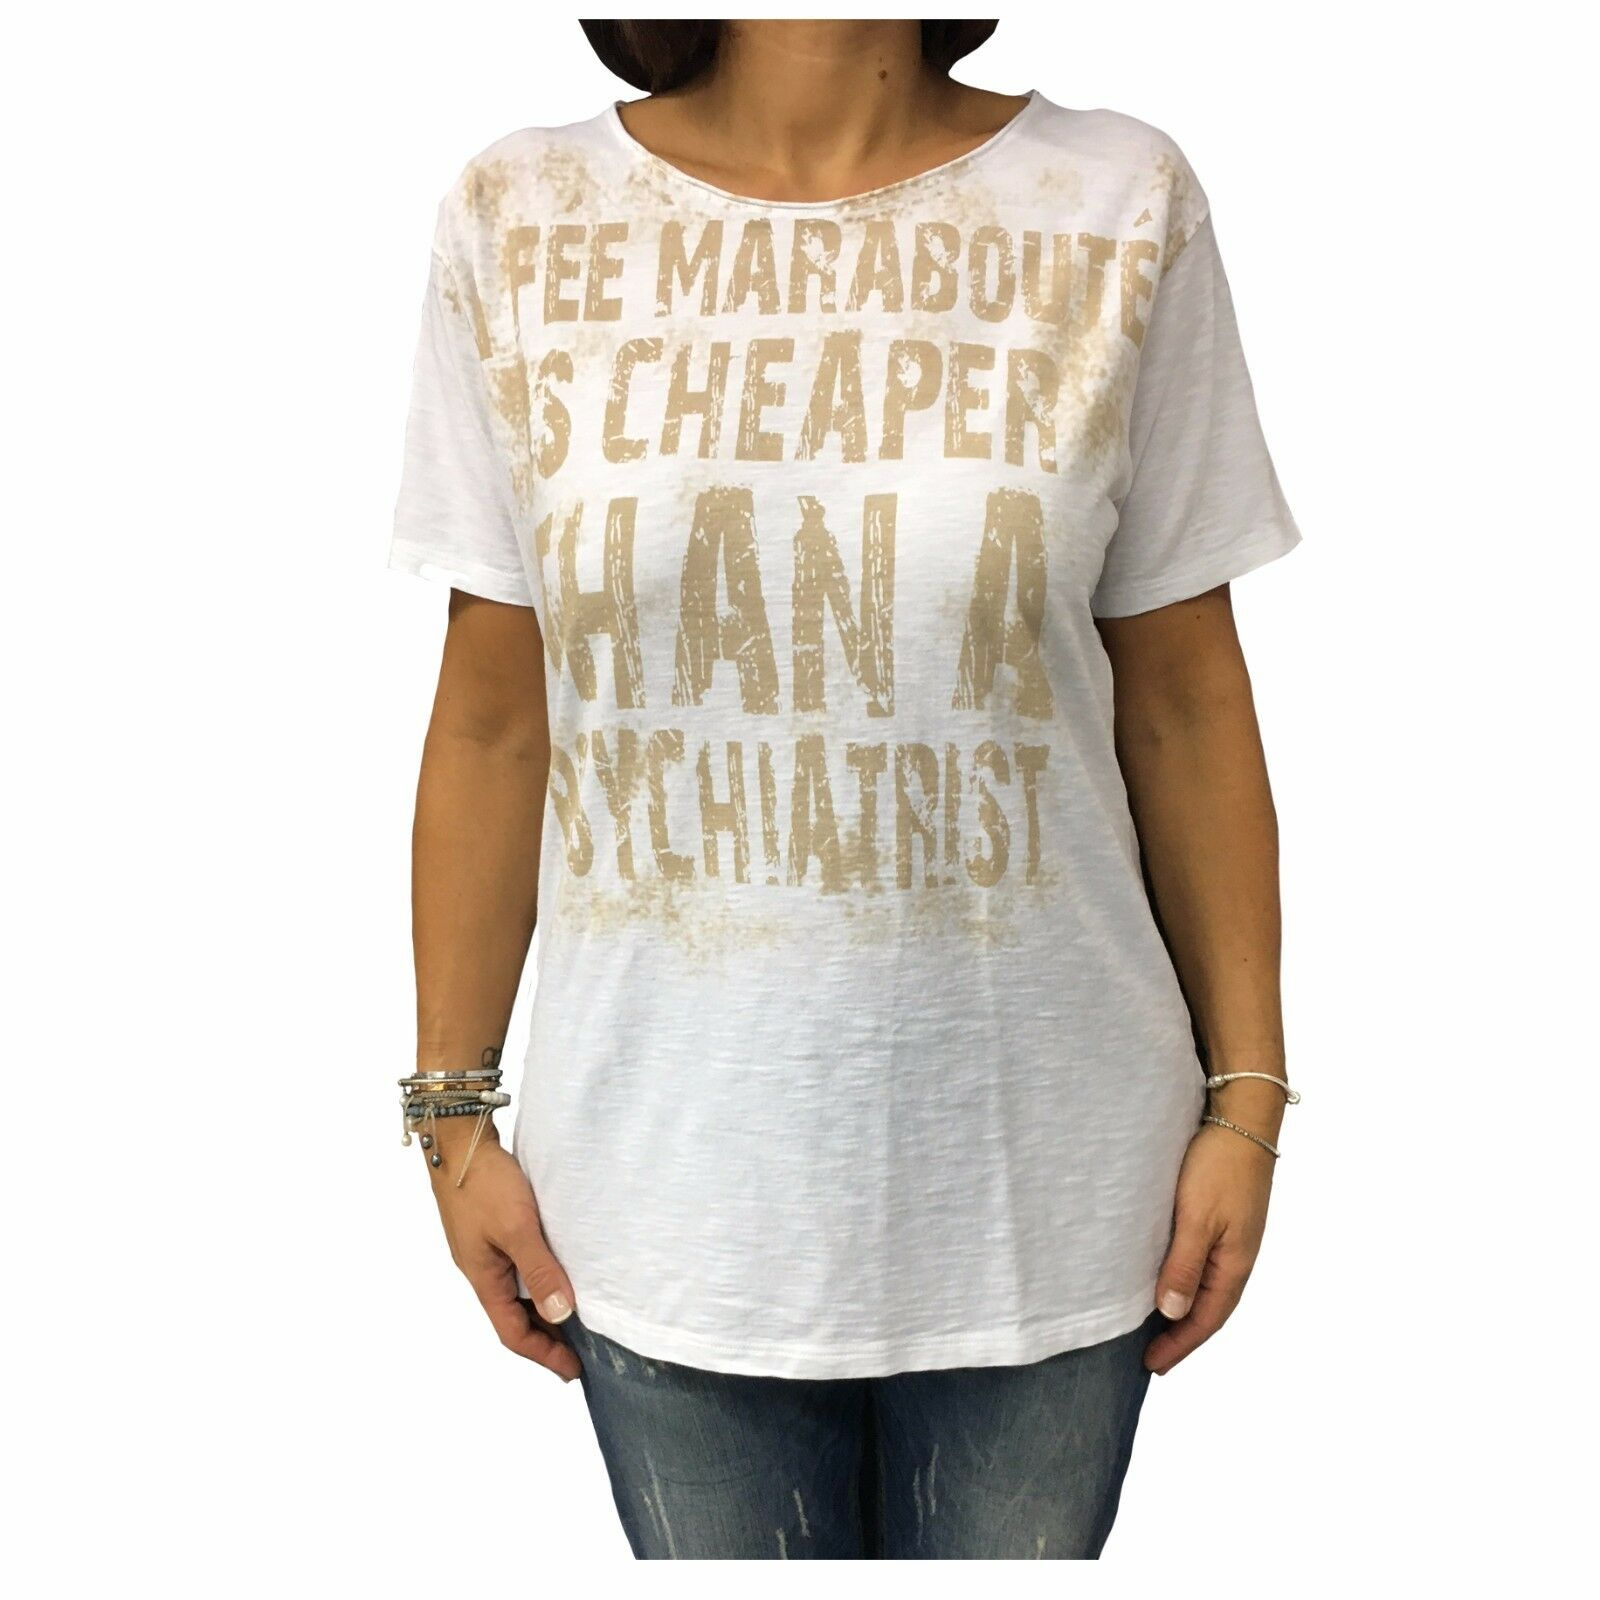 La Fee Maraboutee T-Shirt Manches Courtes Blanc Coton 7559 Made IN